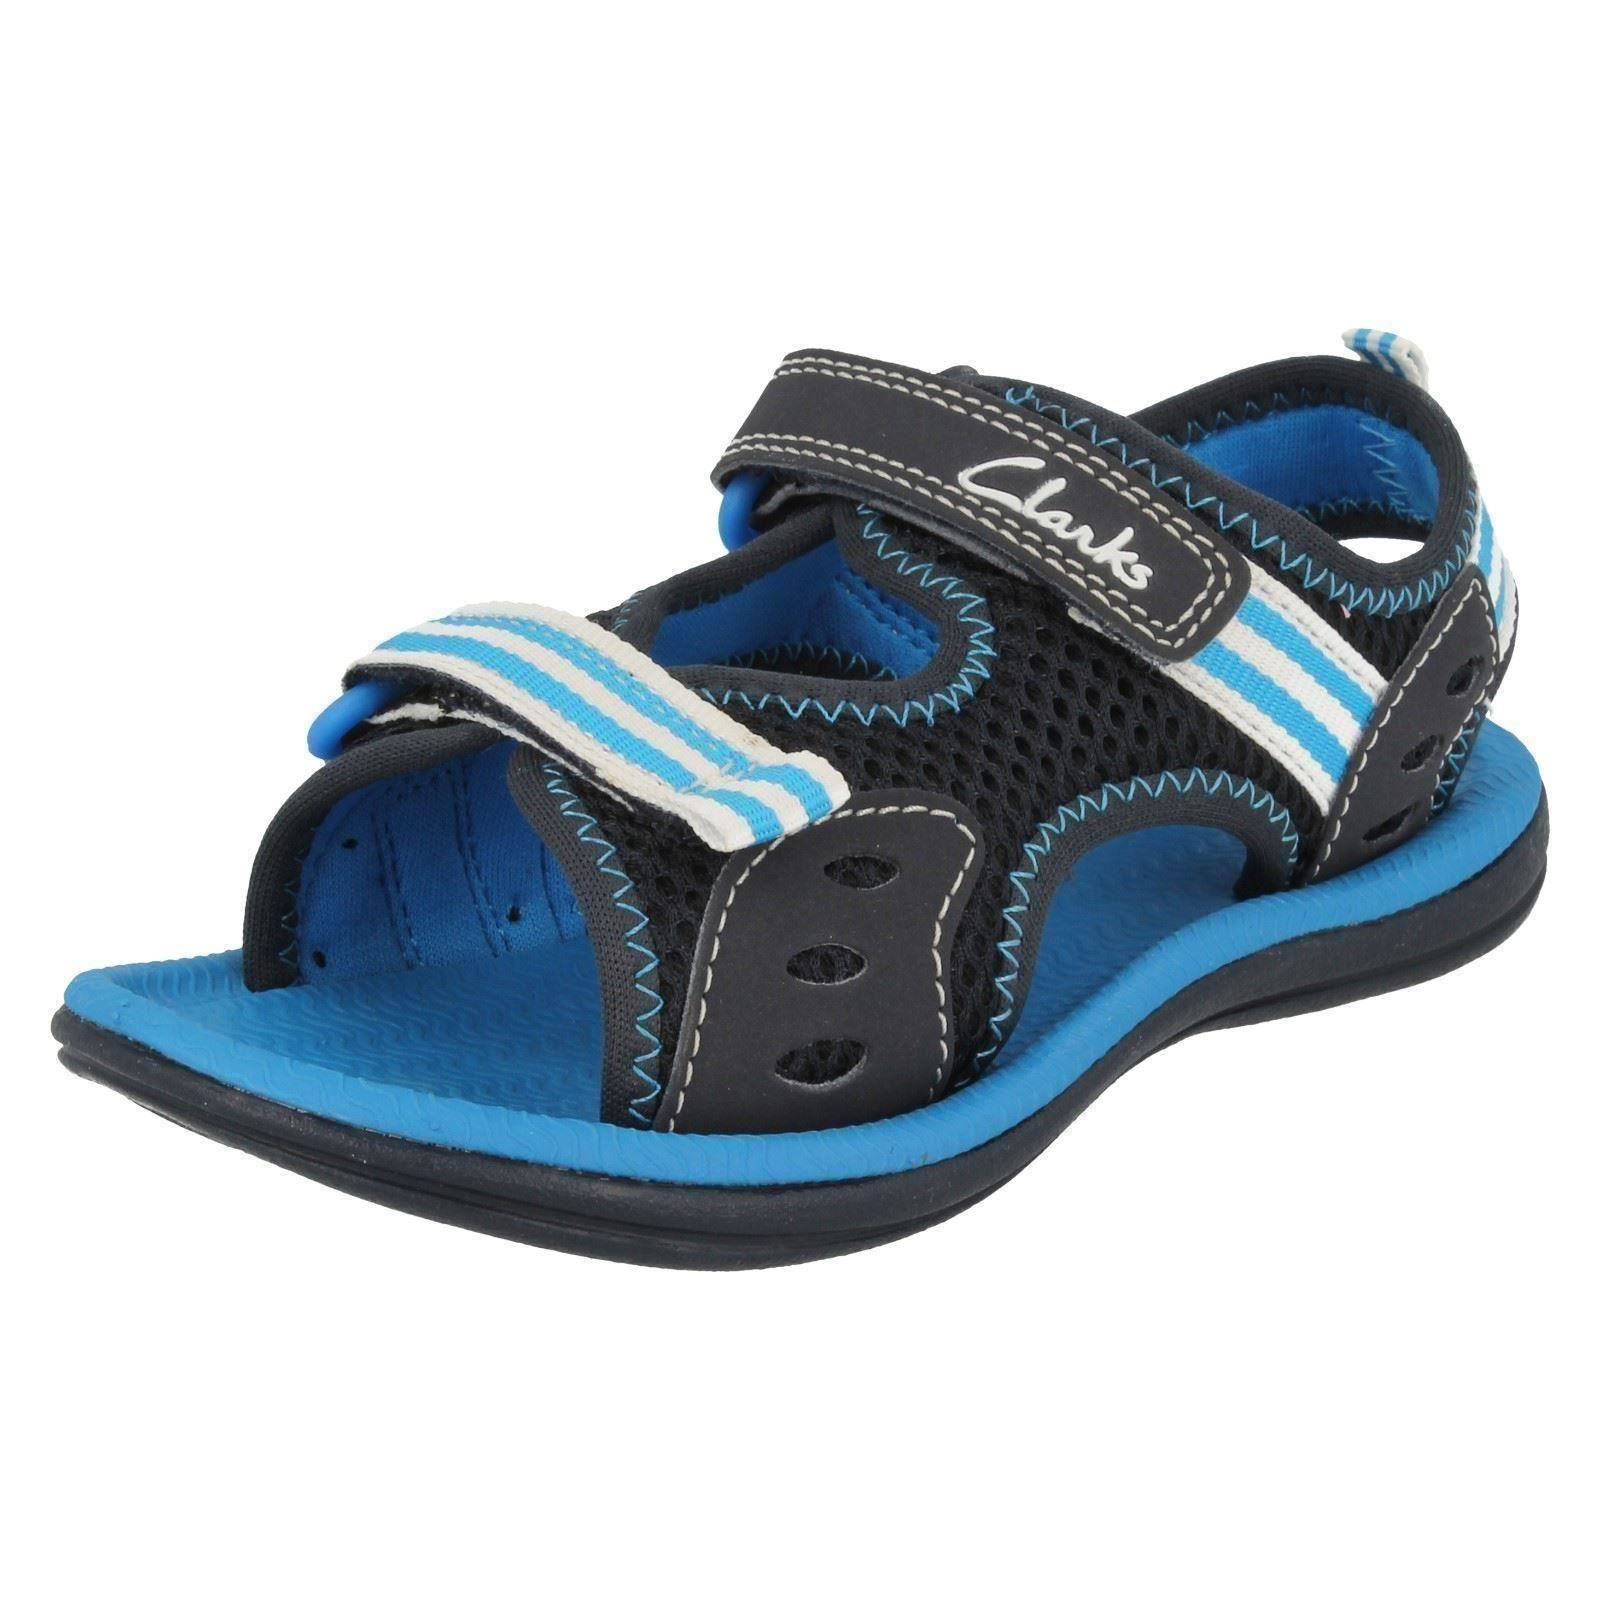 Infant/Junior Boys Clarks Summer Sandals Piranha Boy | eBay